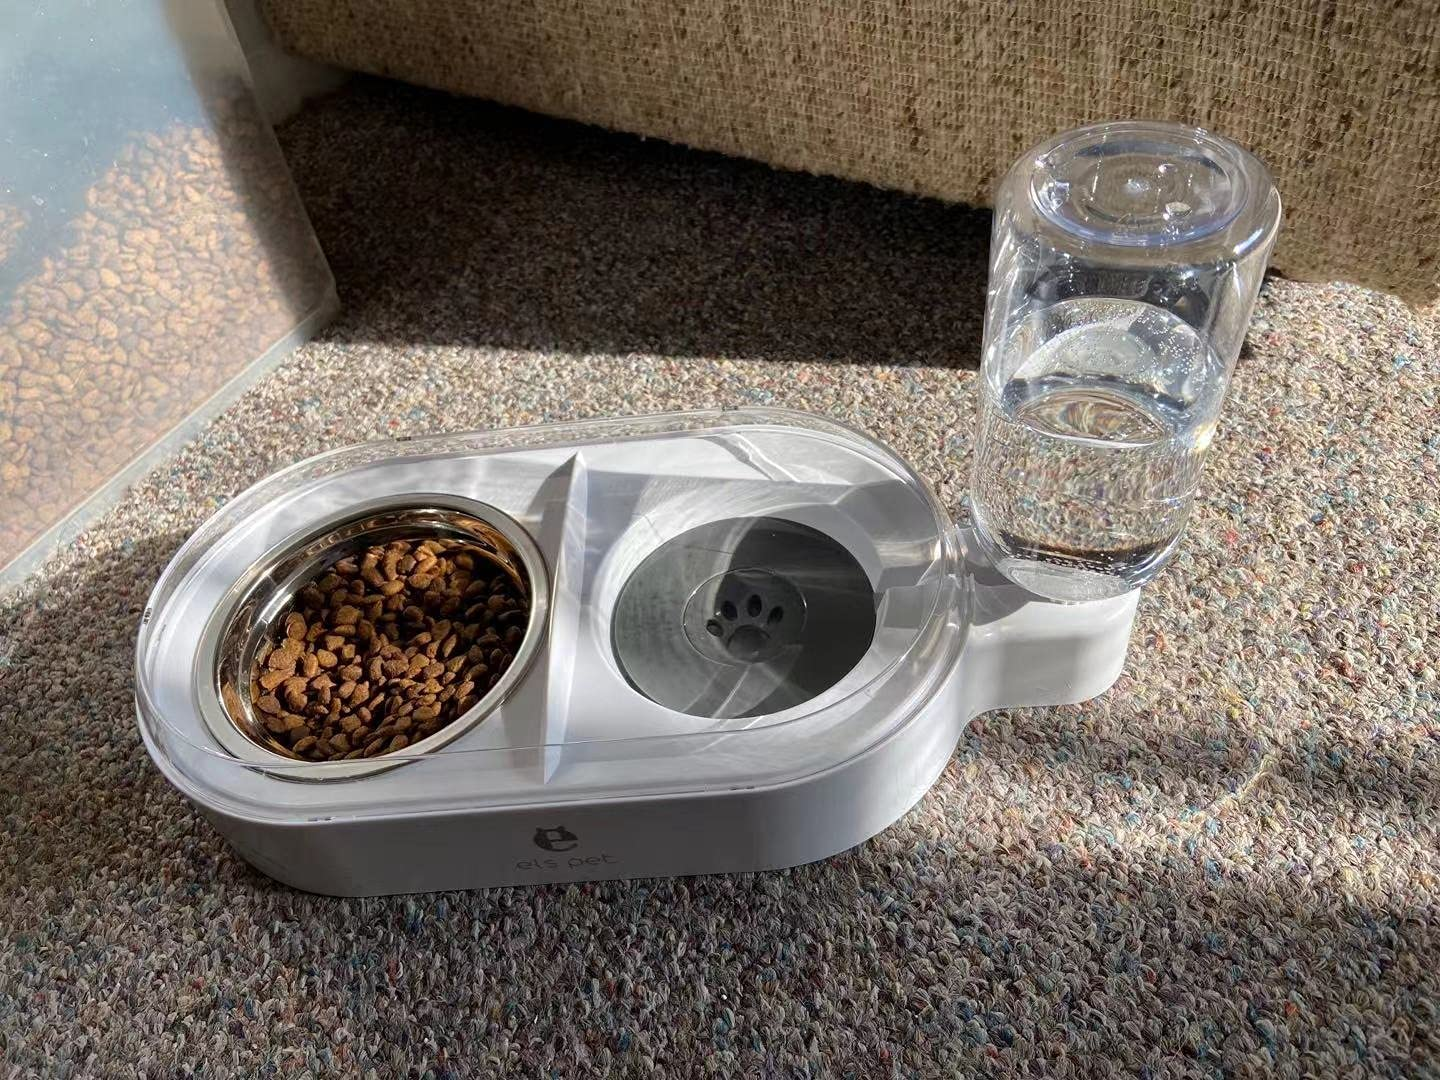 ELSPET 2 in1 Cats Gravity Waterer/Cats Food Bowl, Anti-Spill Raised Side/Anti-Slip Base, Pet Automatic Water Dispenser with Detachable Bowl and 500ml Water Bottle